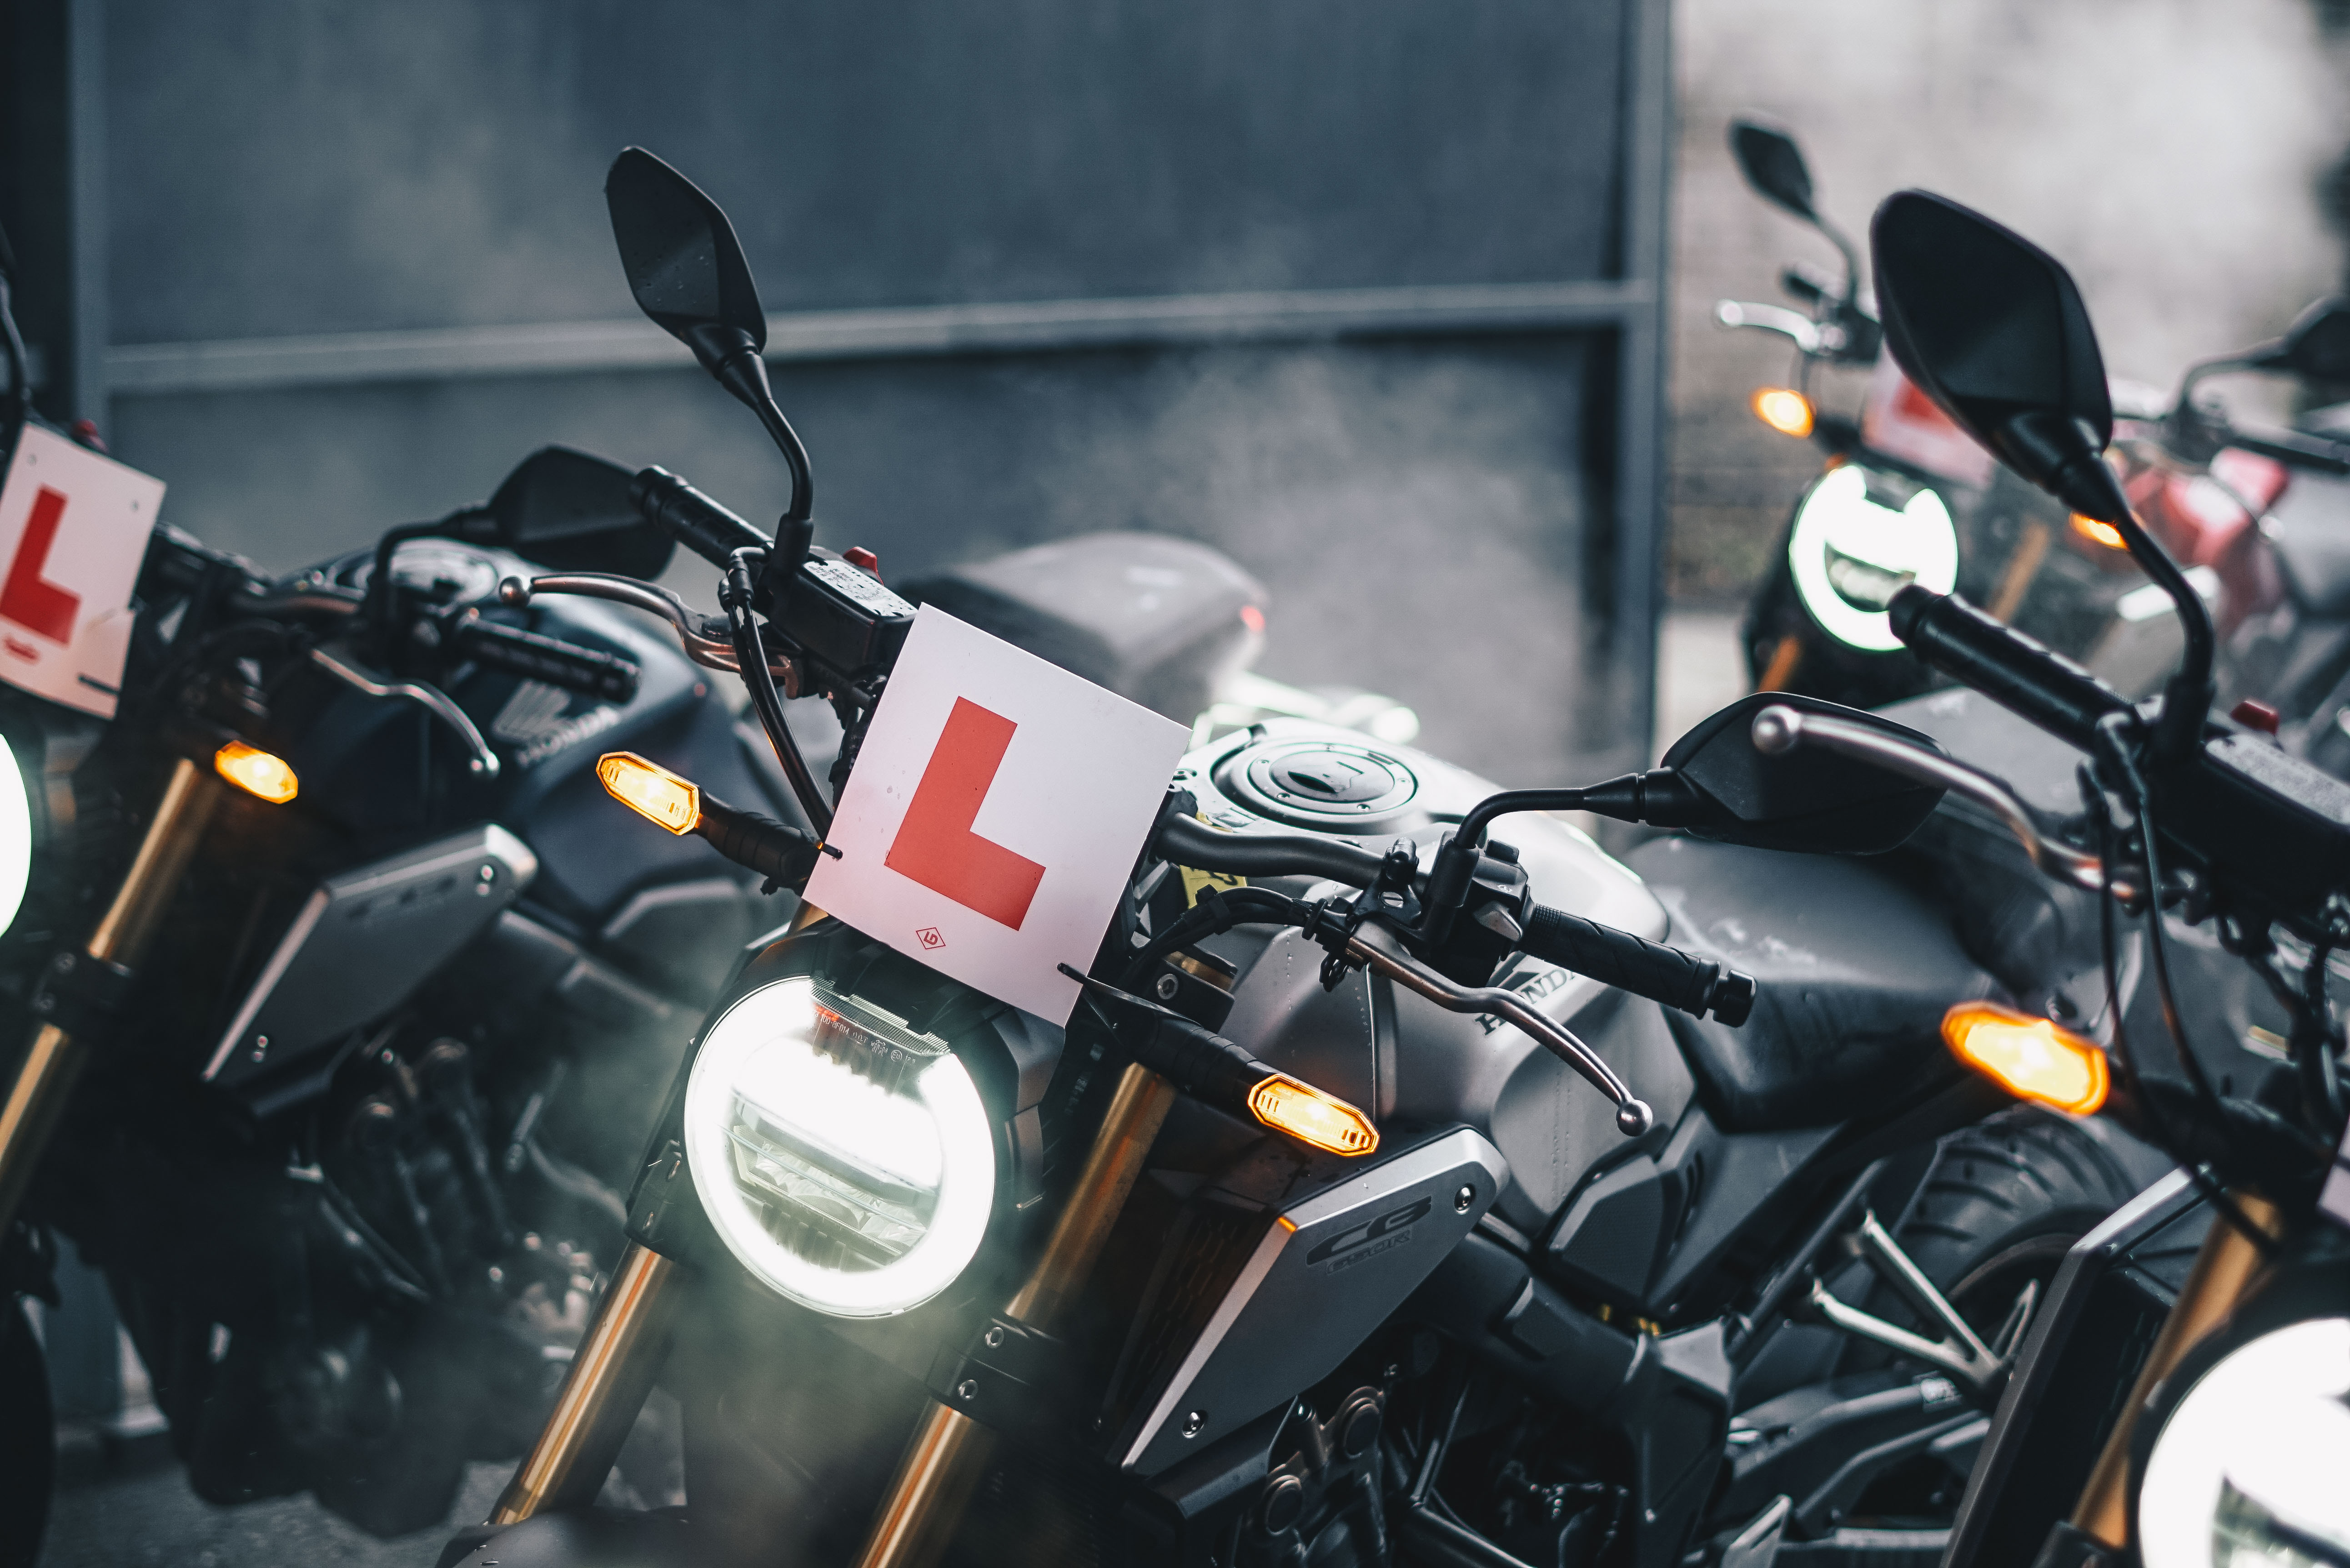 black motorcycle parked beside wall